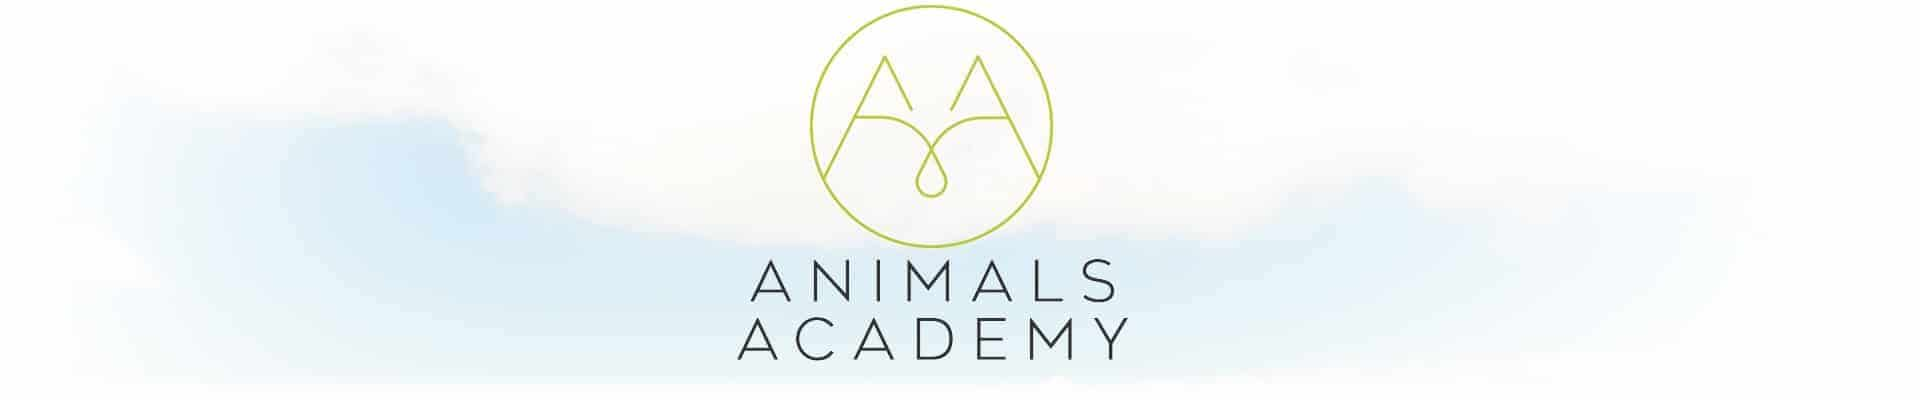 Animals Academy